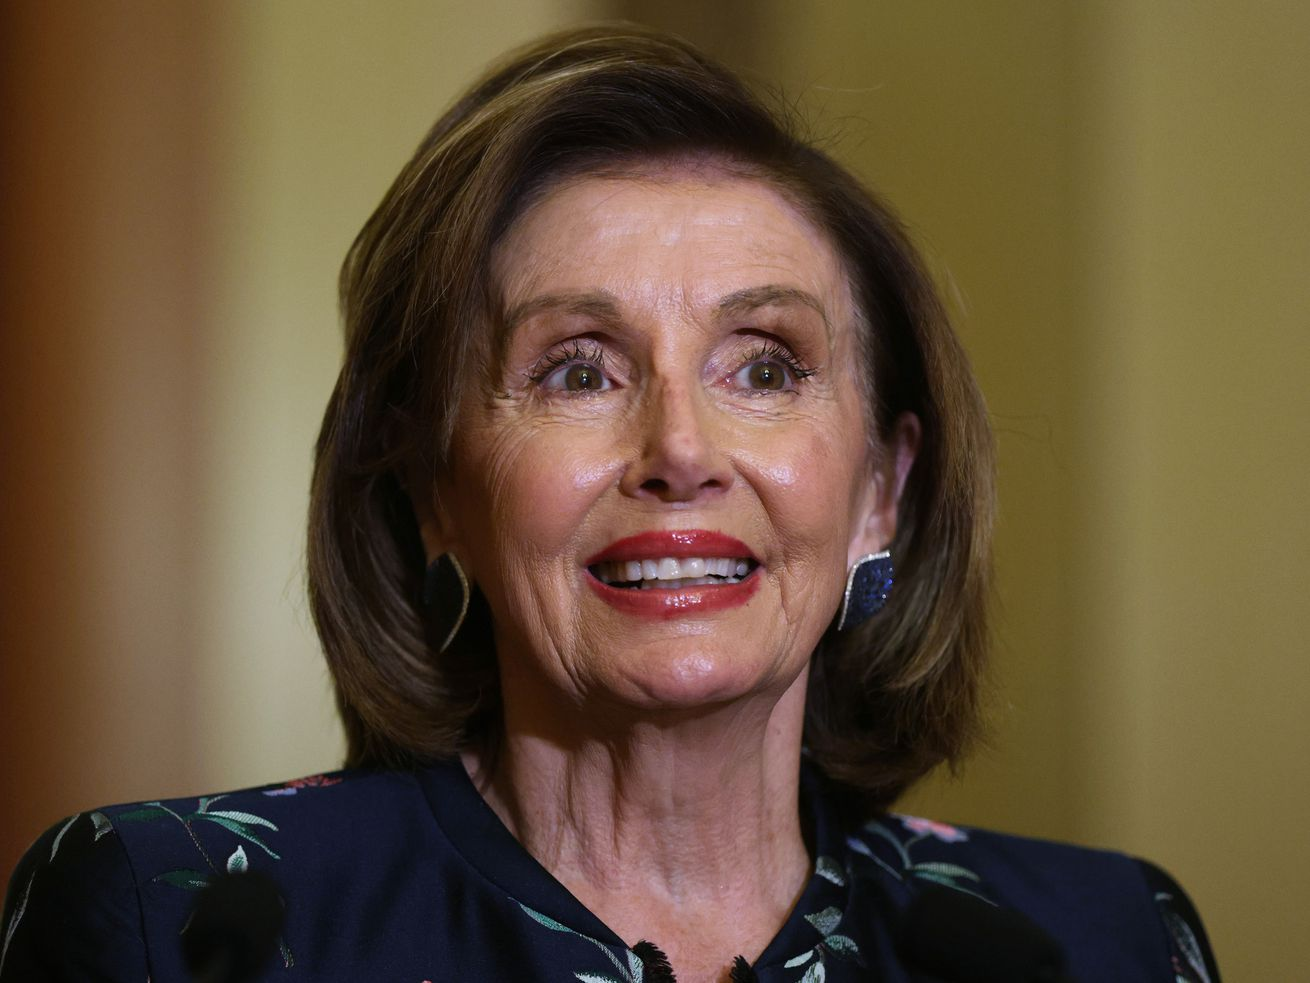 Speaker Pelosi said her plan is to appoint Illinois Republican Rep. Adam Kinzinger to the Jan. 6 panel